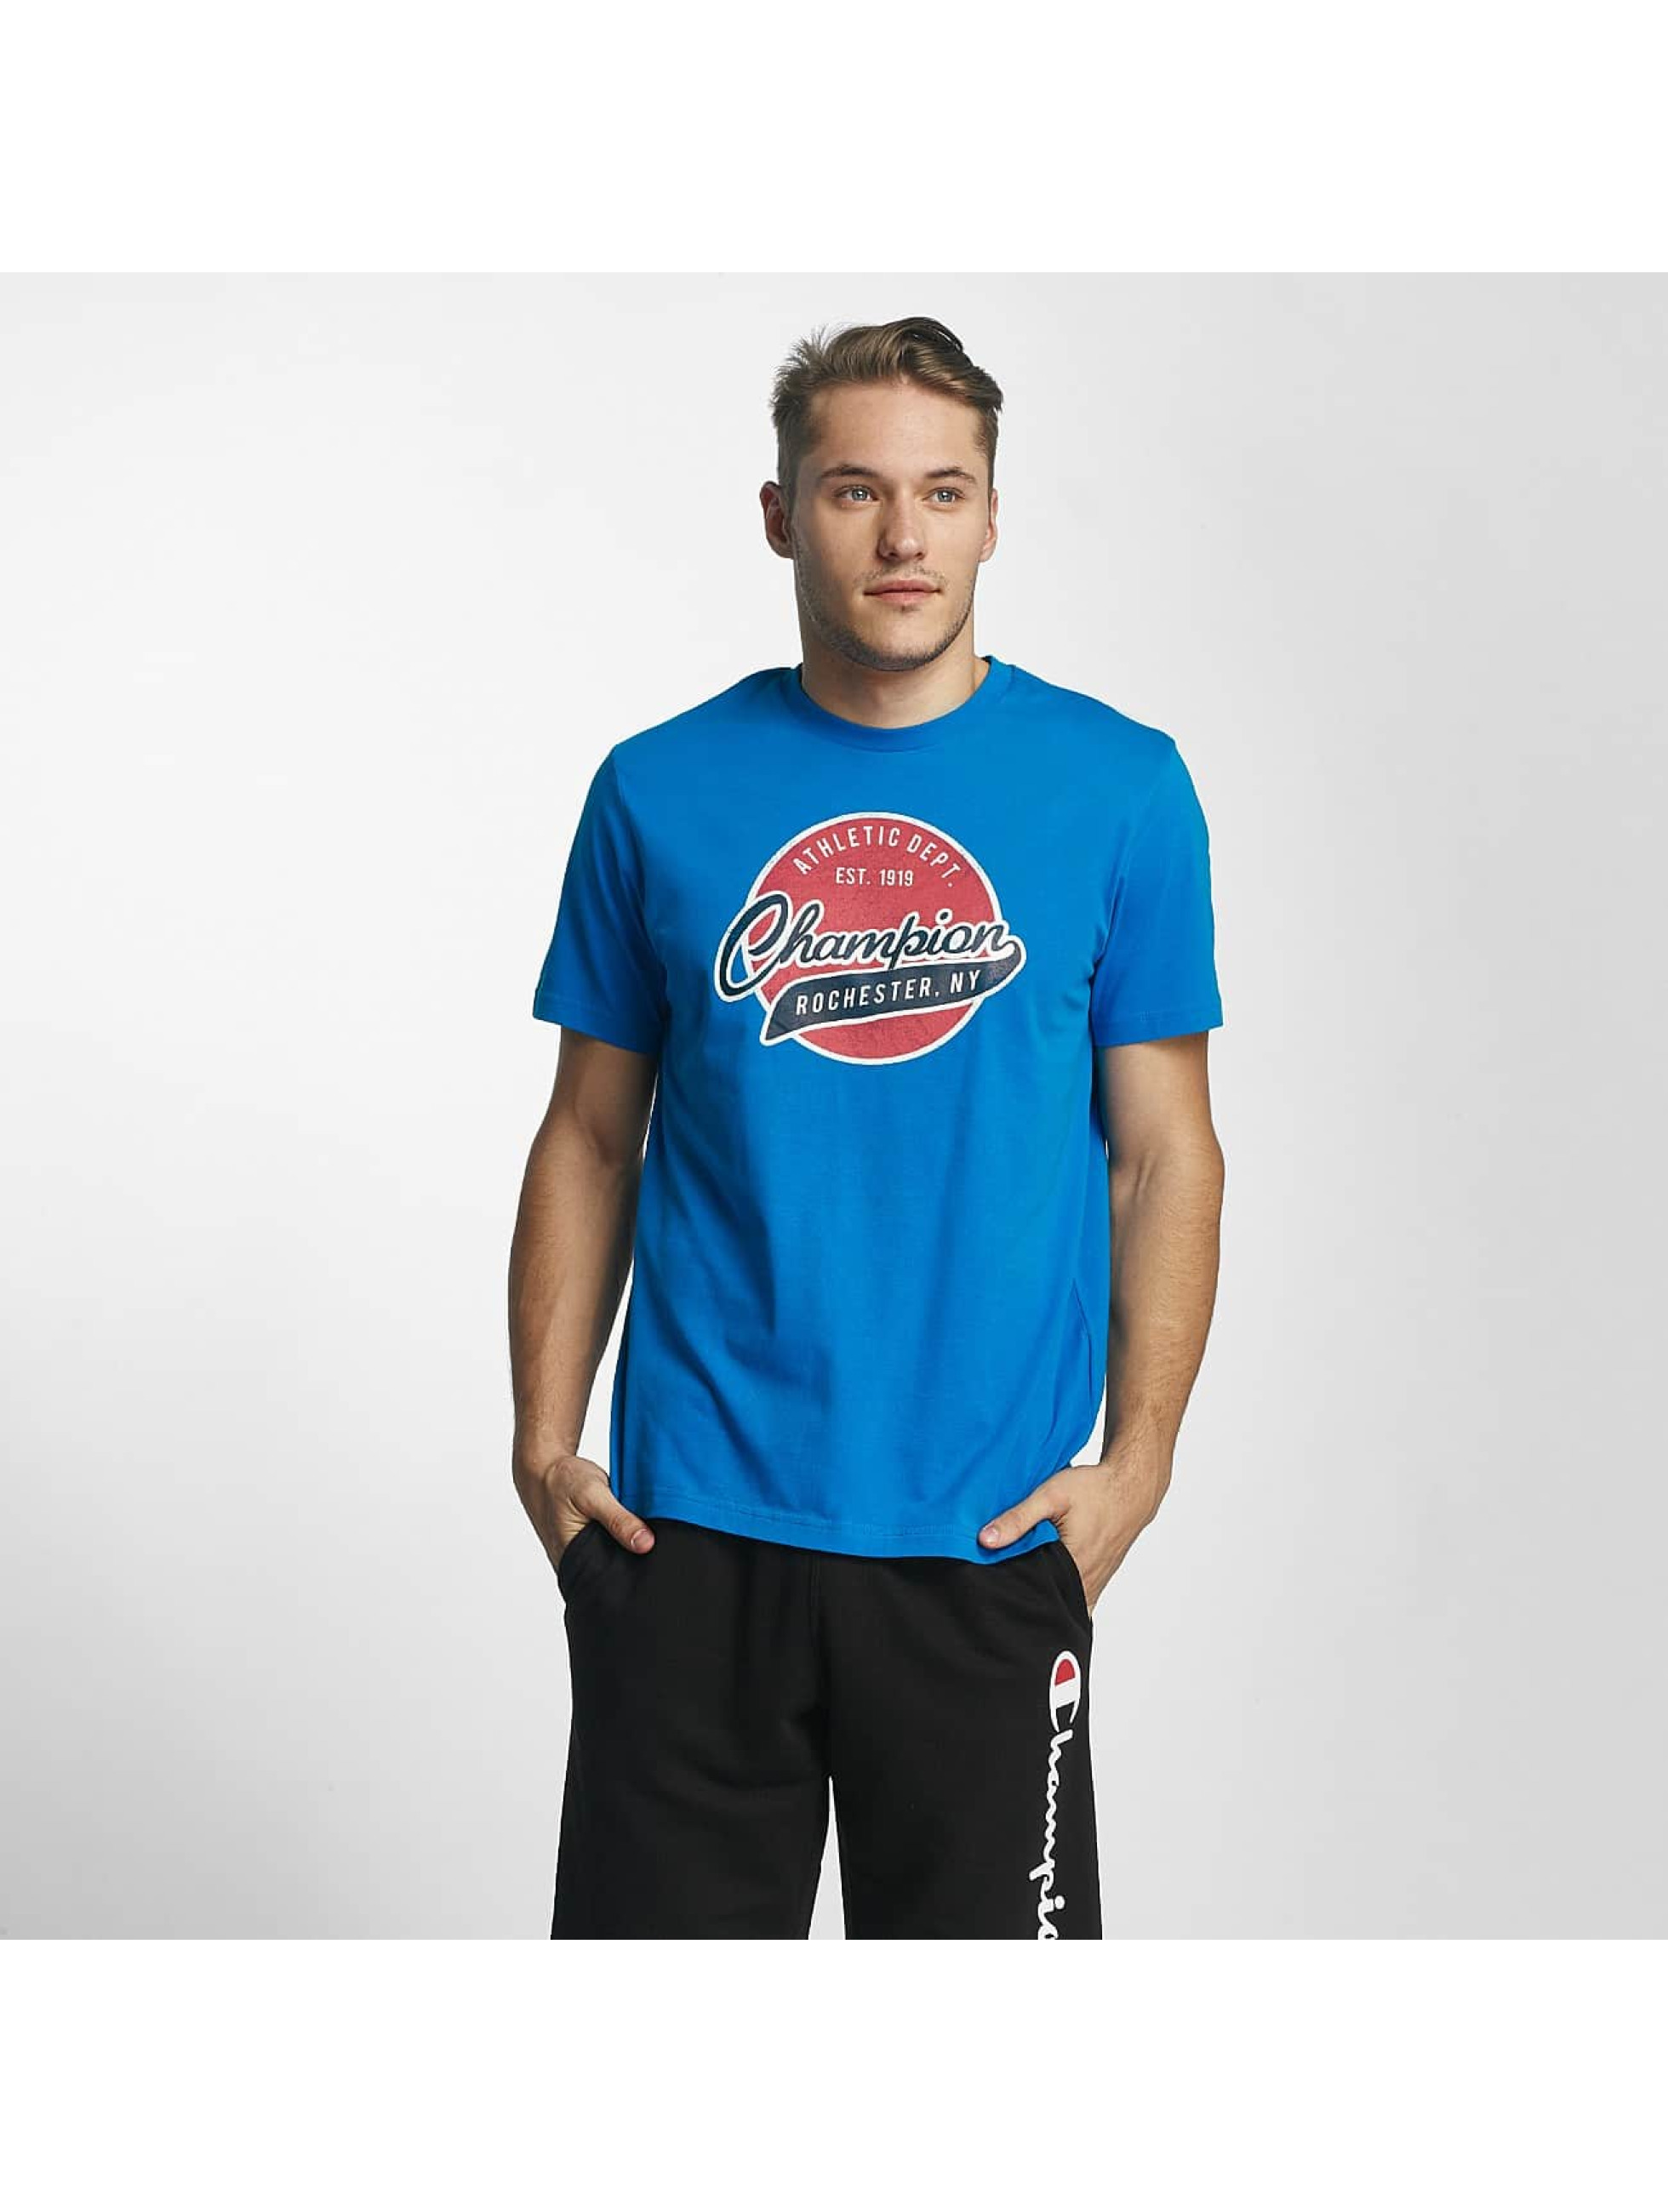 Champion Athletics Männer T-Shirt Logo in blau